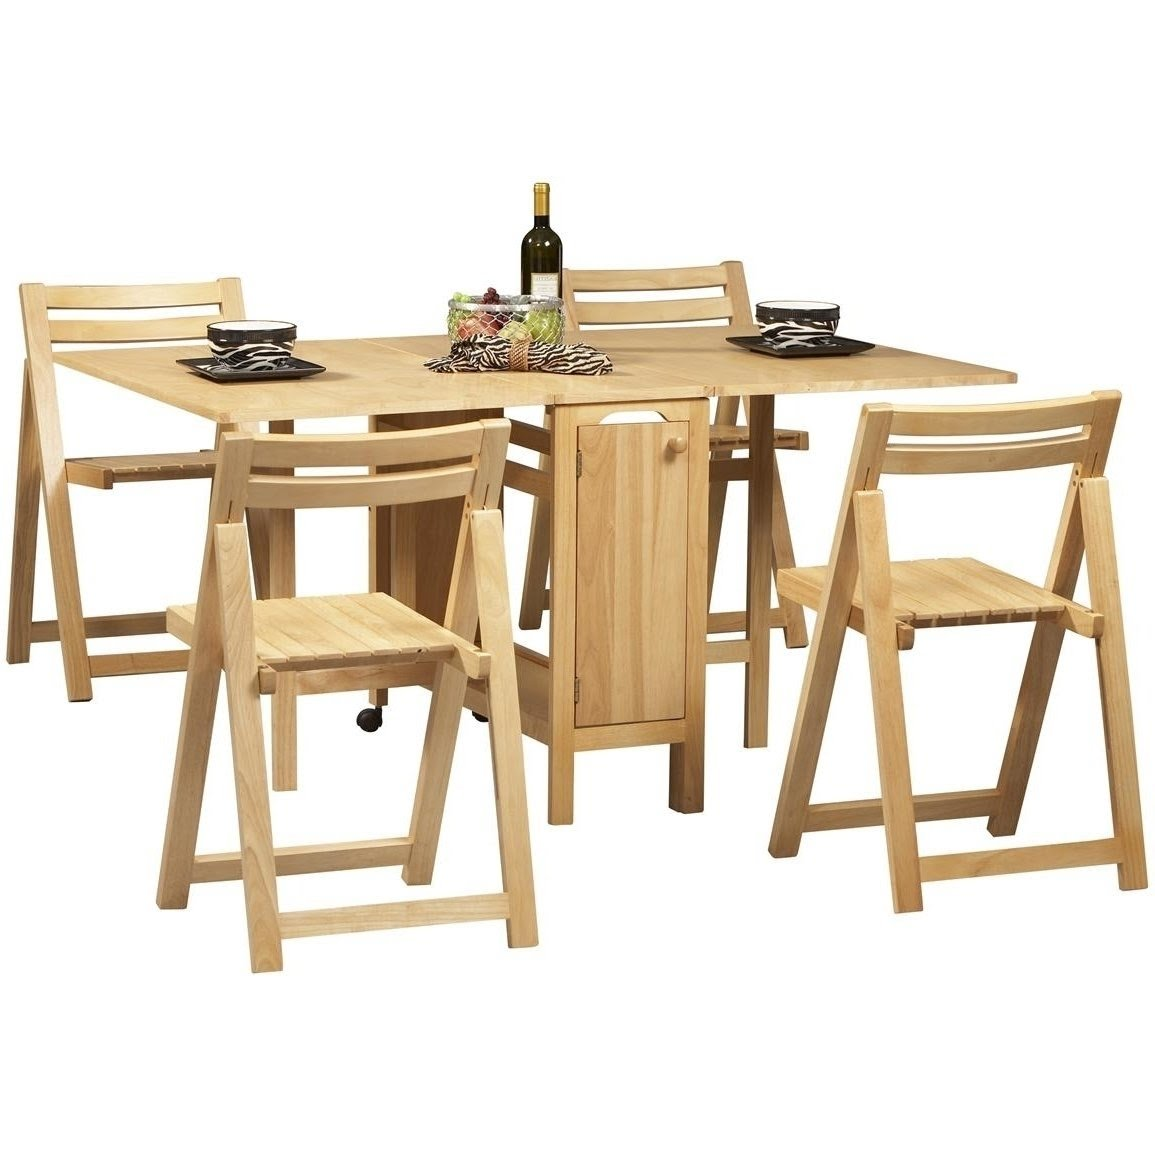 Space Saving Dining Table Chairs Set   Interior Space .